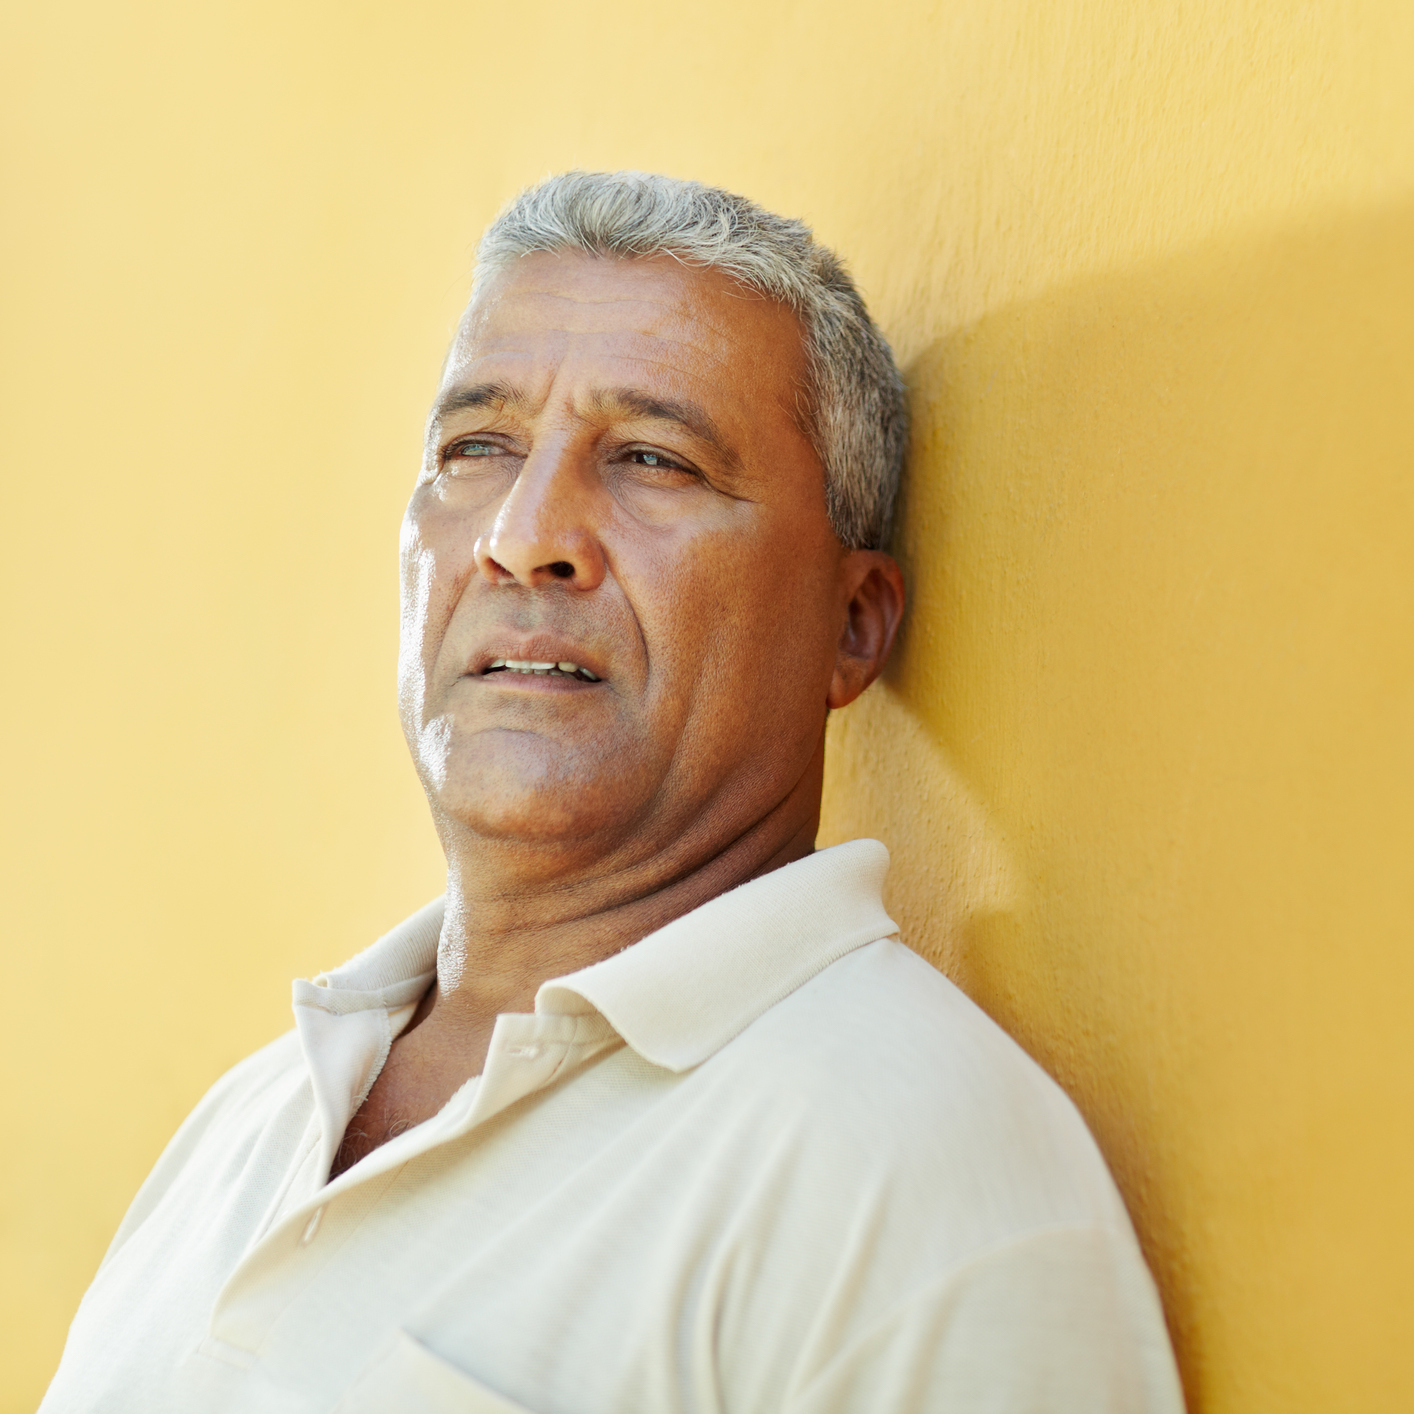 stebbins mature personals Free mature personals - find your beauty girlfriend or boyfriend sign on this dating site and get free romantic match meet interesting people and find online love.